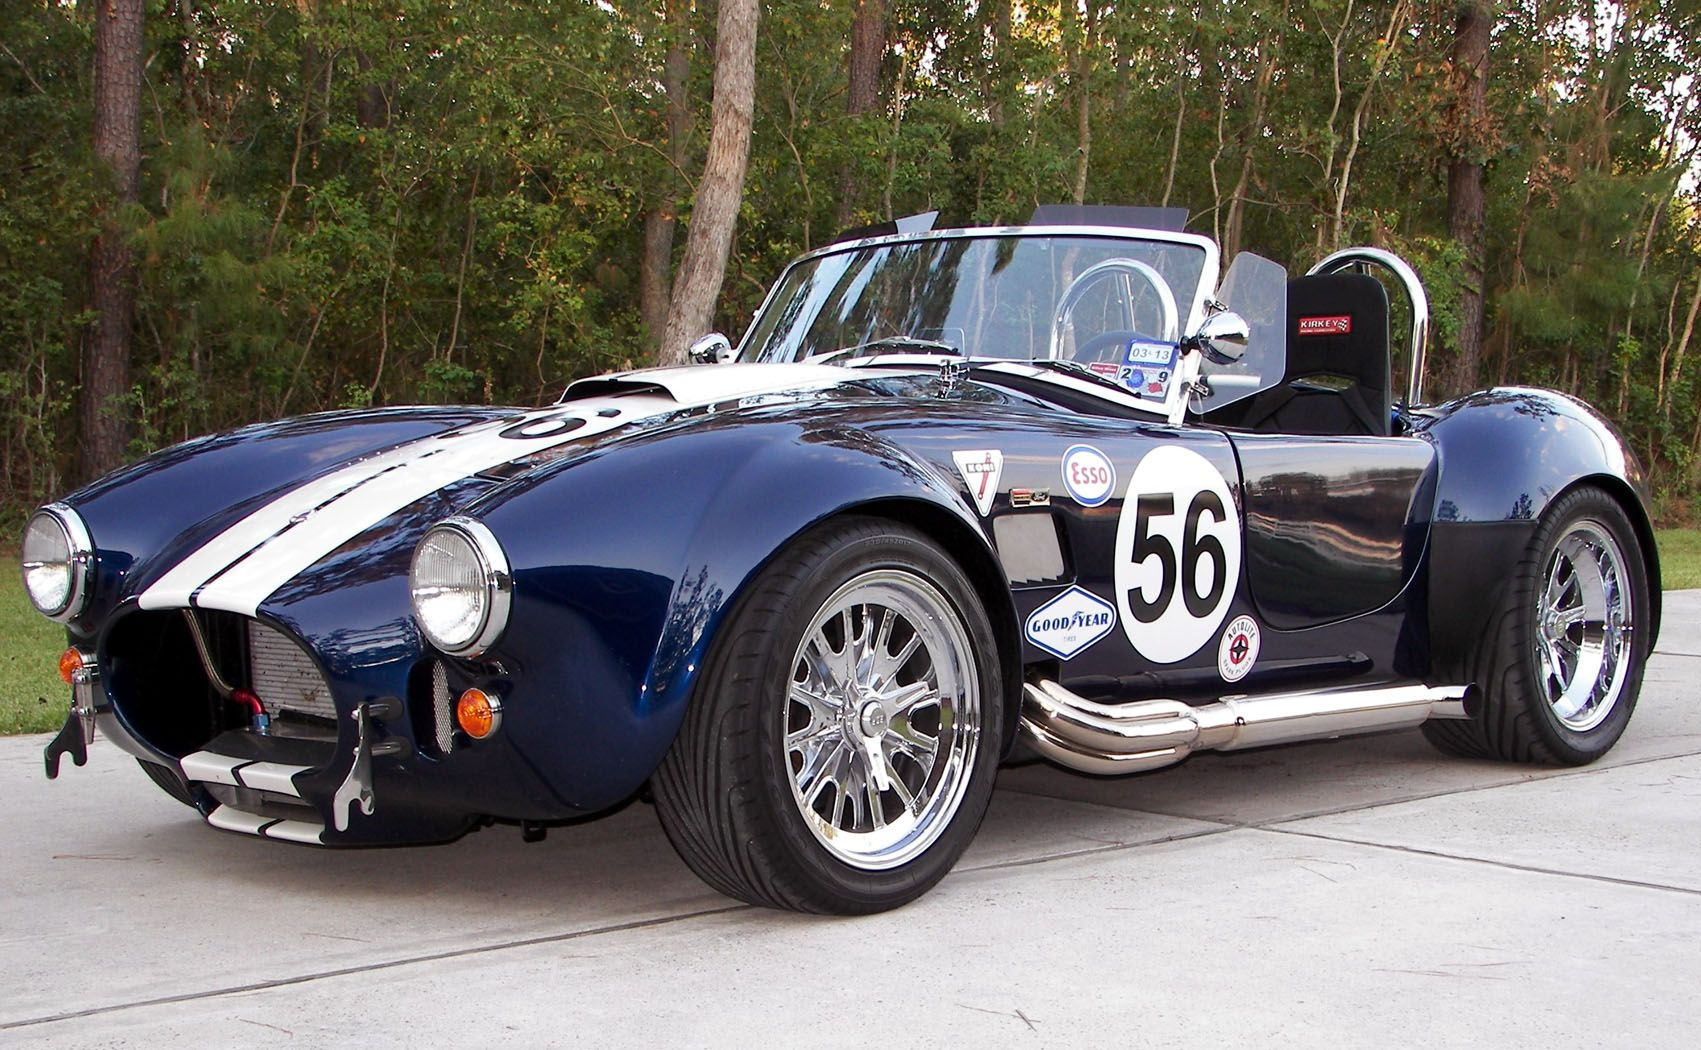 1965 Shelby Cobra Replica By Backdraft Racing Ford Shelby Cobra